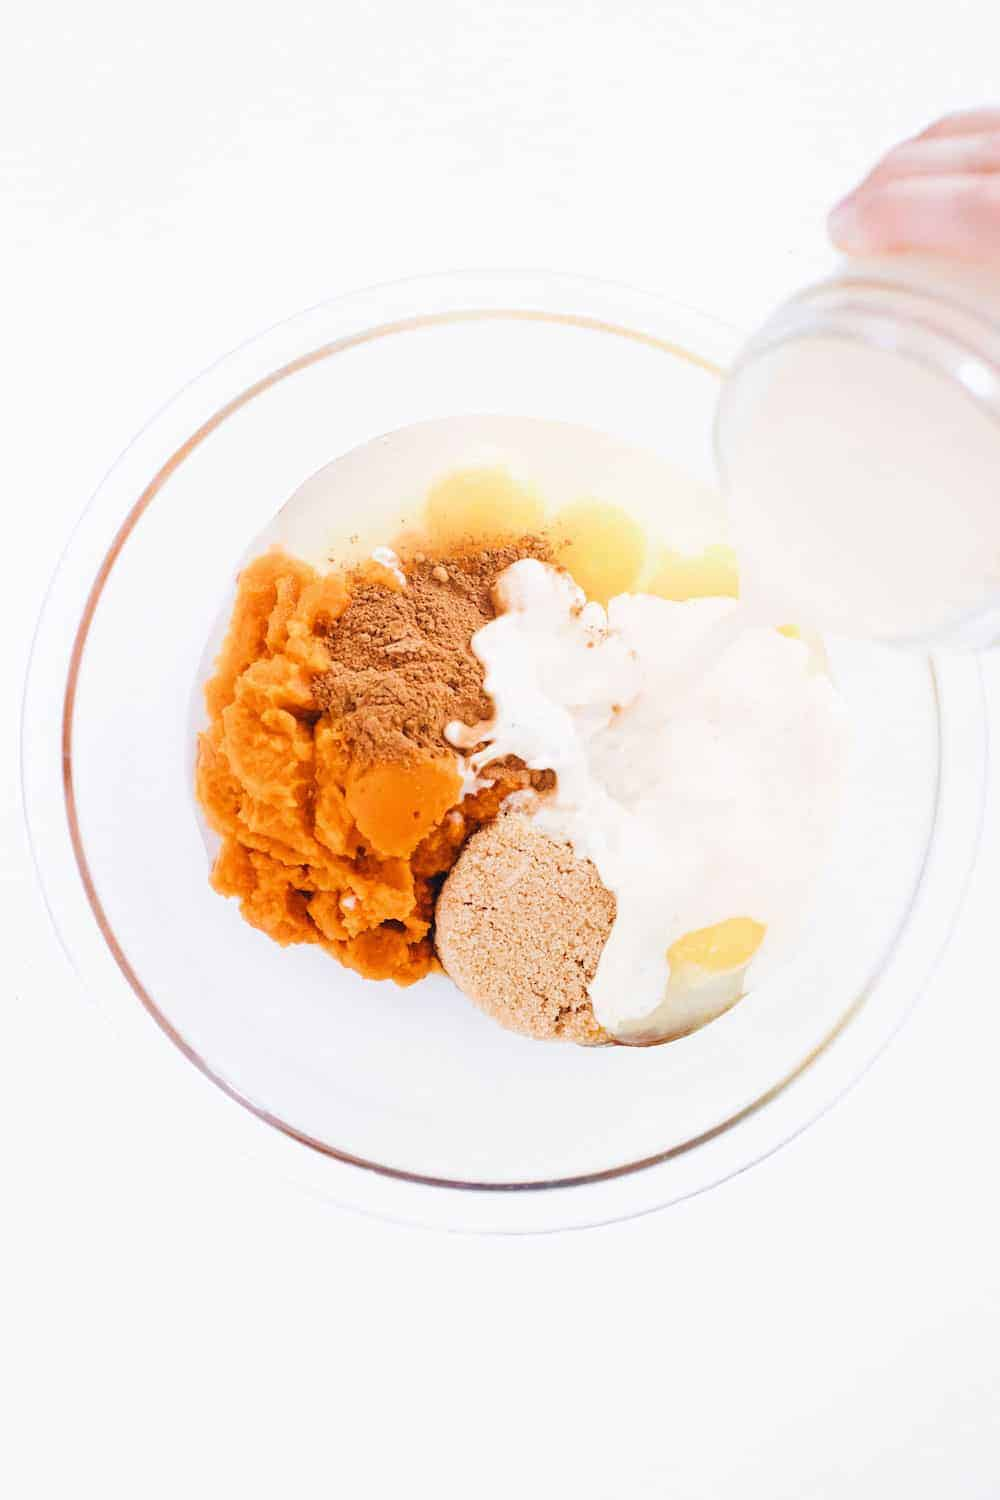 Pumpkin Crunch Cake ingredients in glass mixing bowl on counter